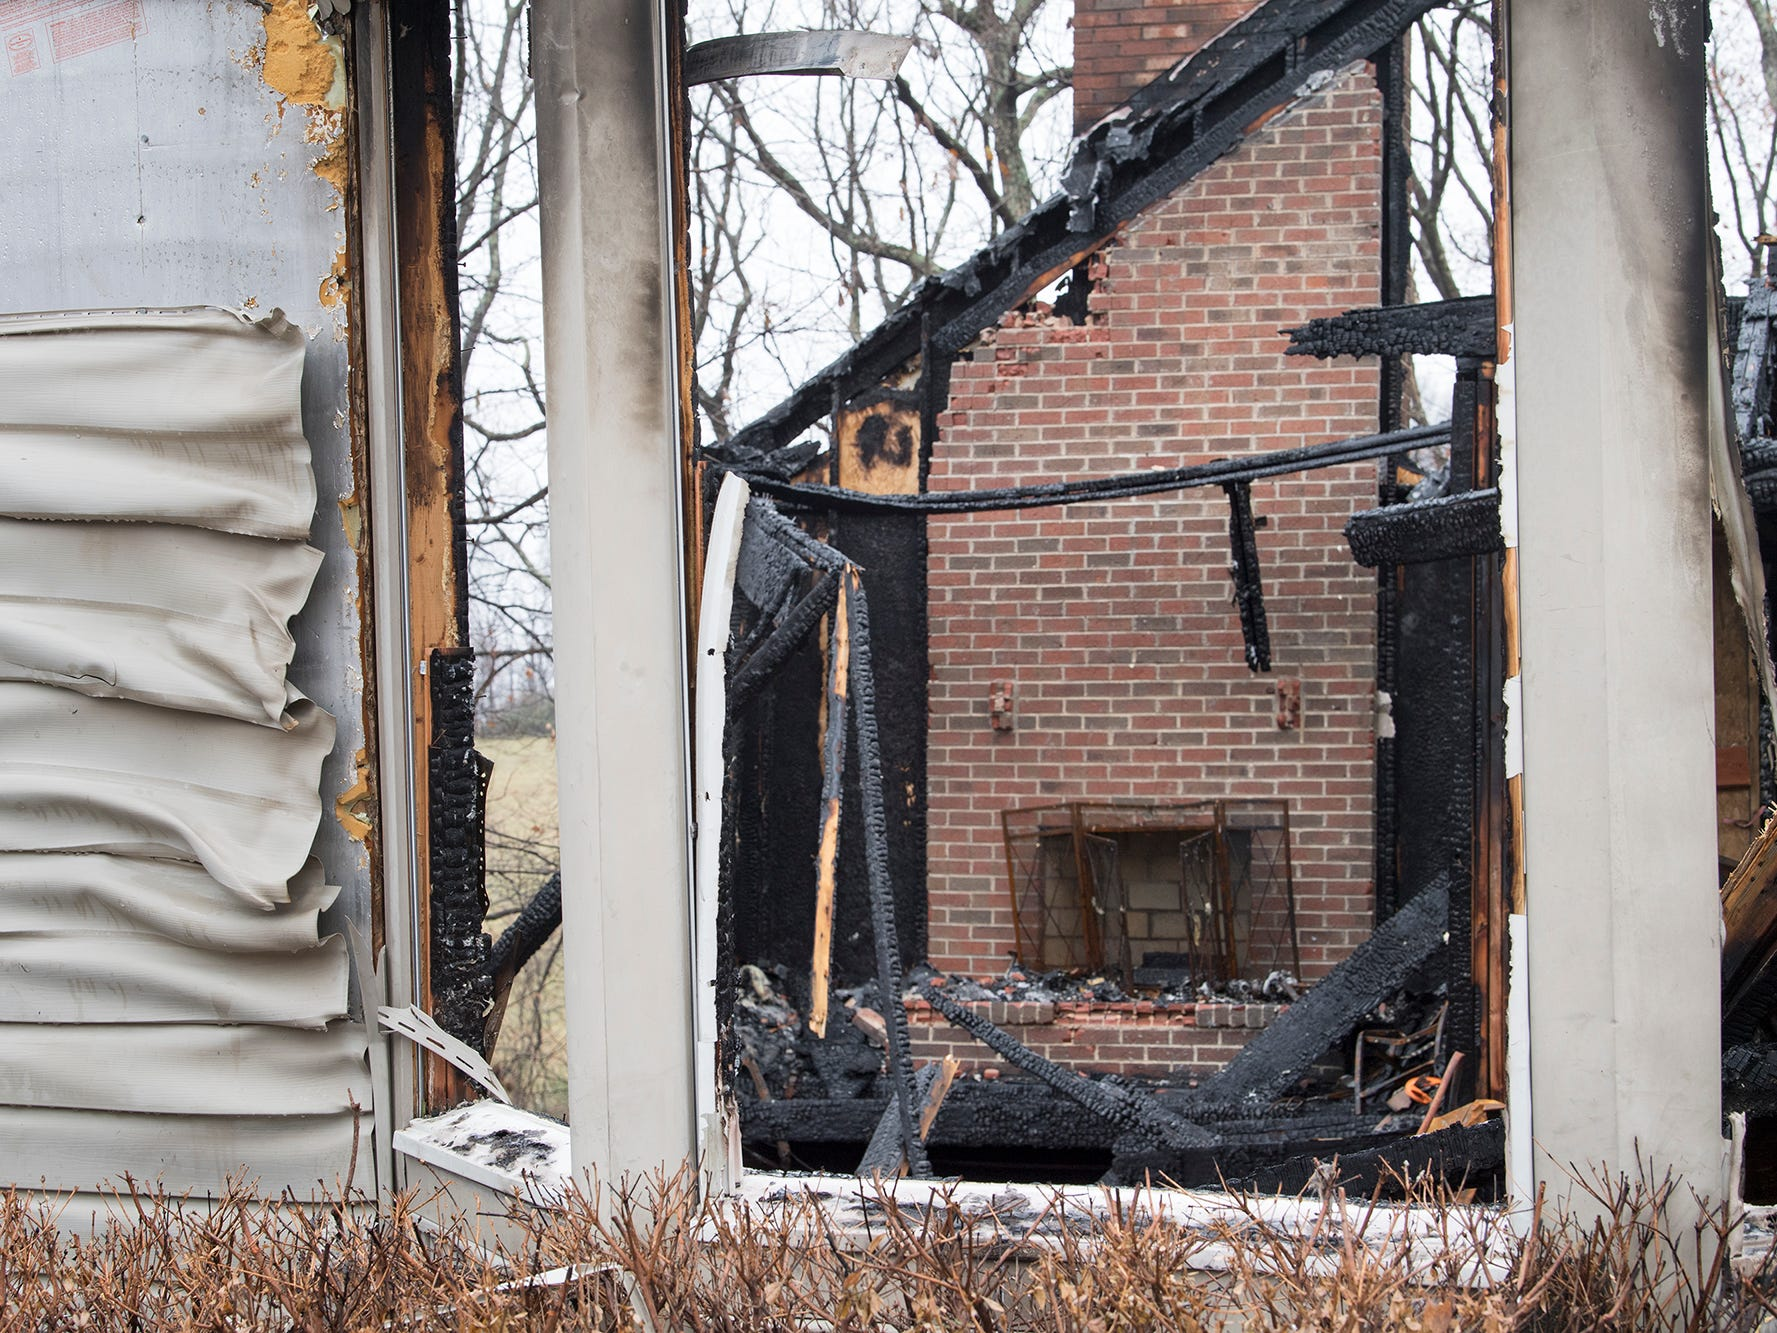 The fireplace where the fire began can be seen through a ground floor window at the scene of the Shrewsbury Township fire on Sunday December 2, 2018.